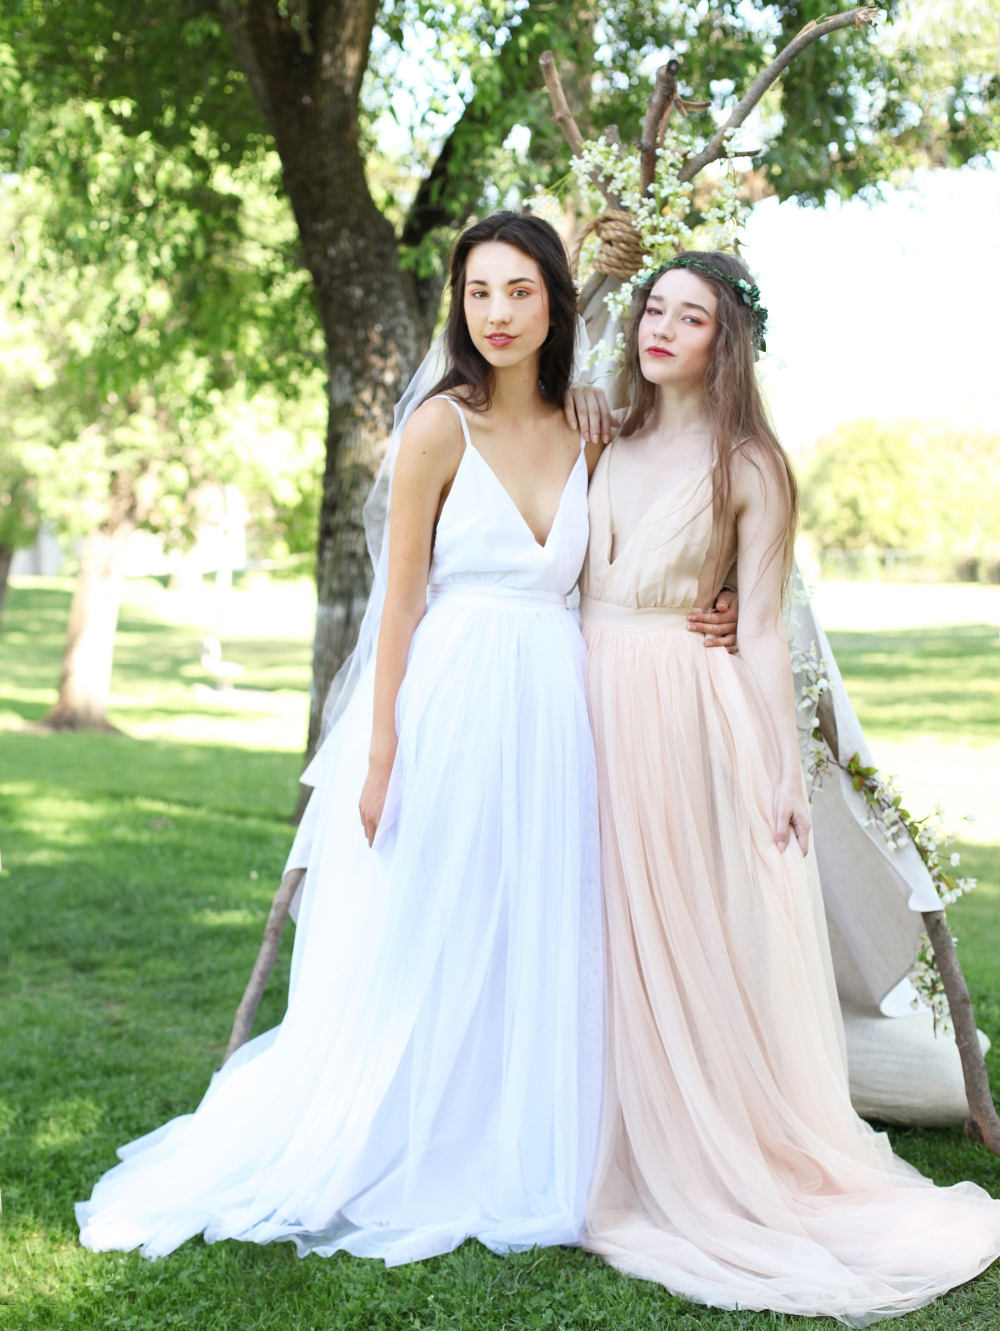 Alyssa Nicole Tulle Bridal Gown, Blush Tulle Gown, Spellbound Floral Crowns